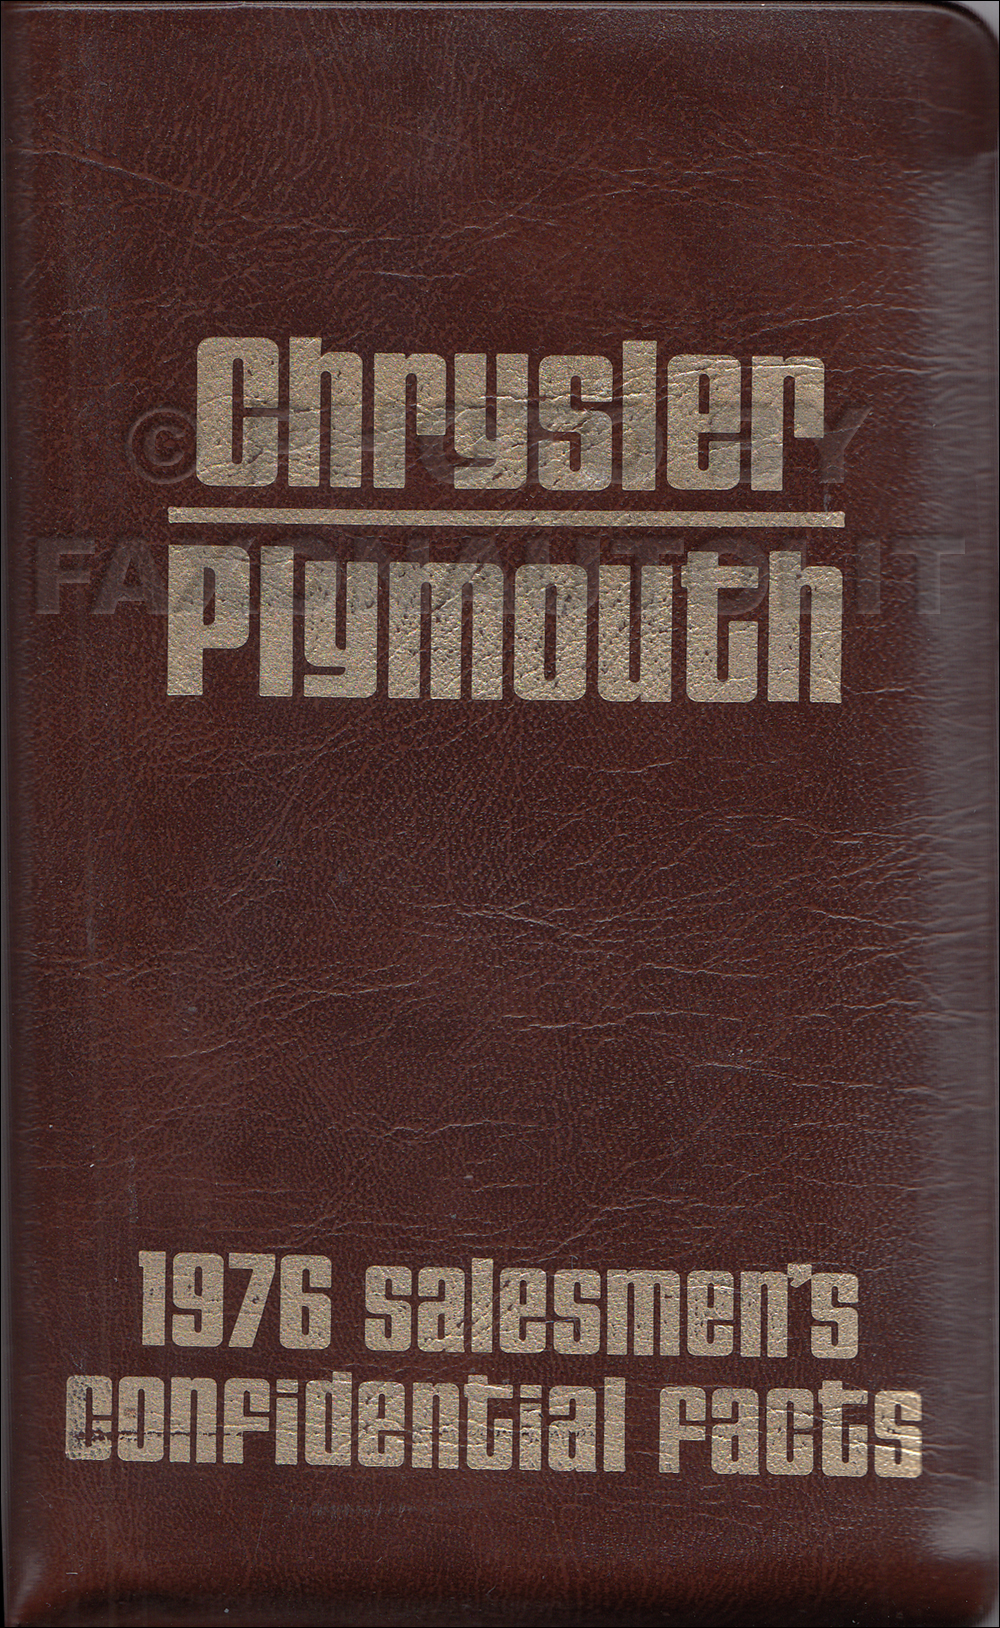 1976 Chrysler Plymouth Pocket Size Salesmen's Confidential Facts Guide Original